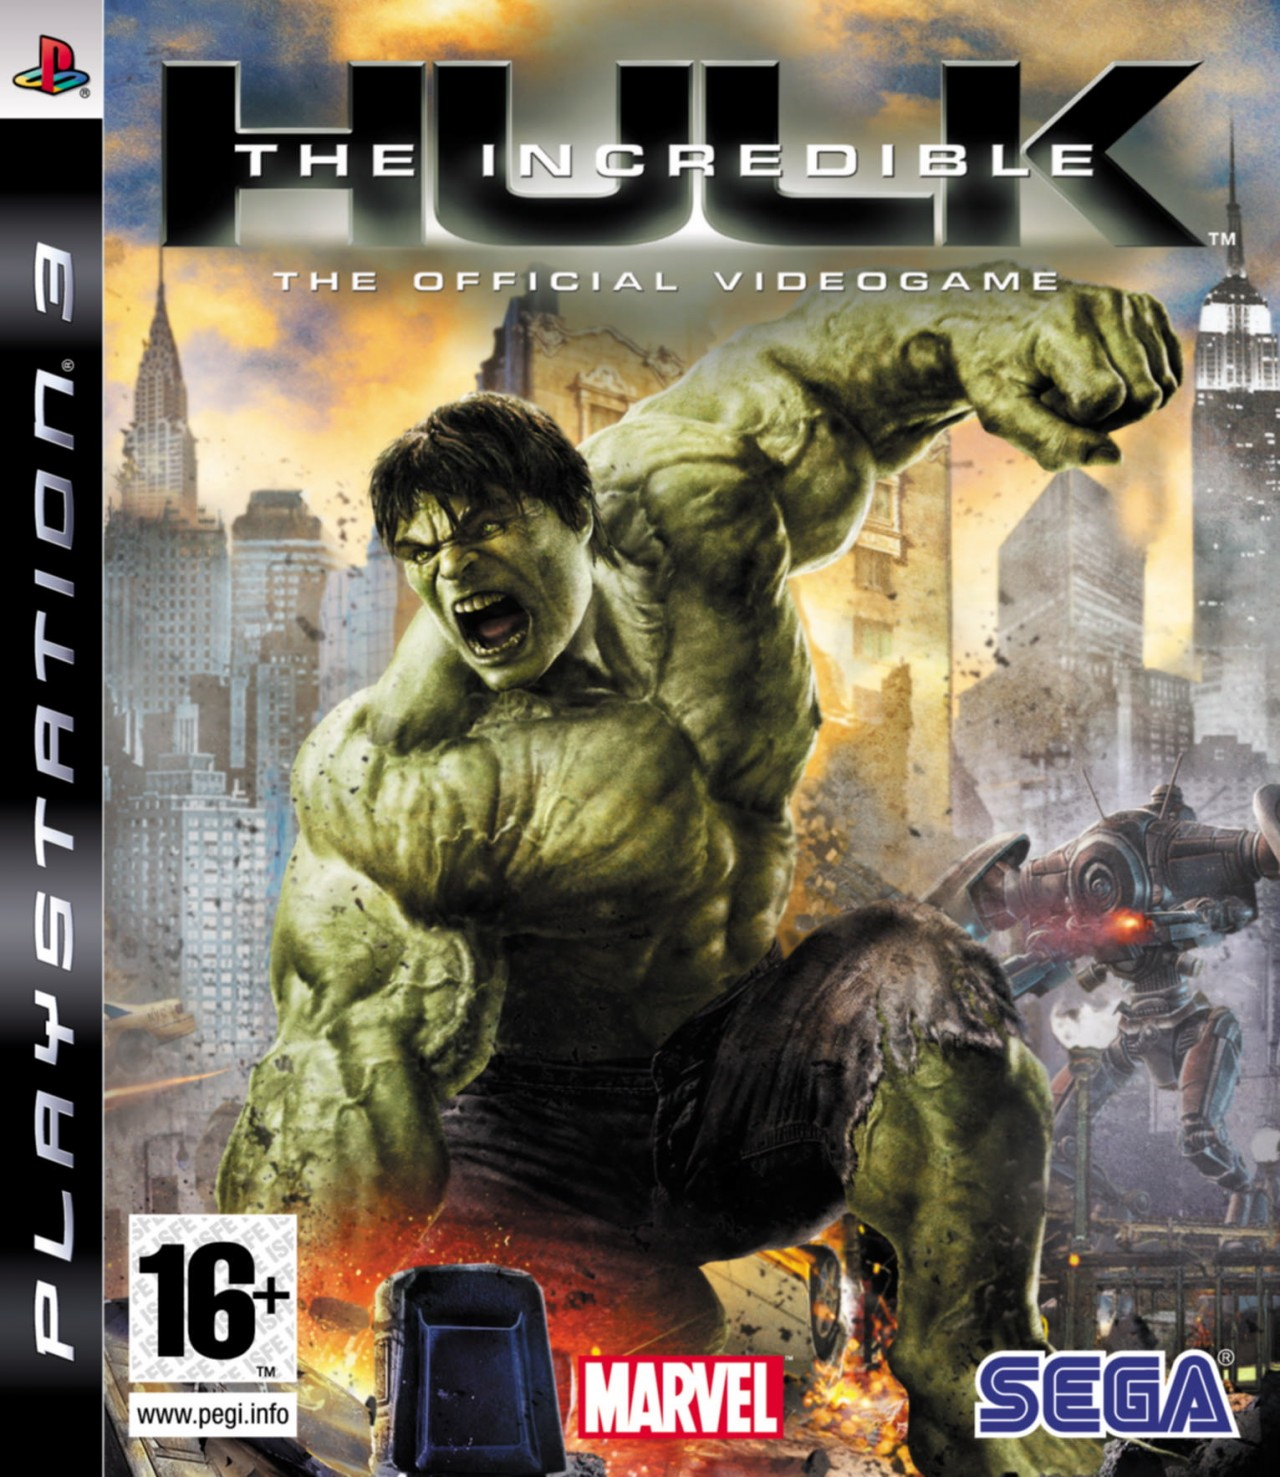 the incredible hulk ps3 argus jeux vid o d 39 occasion cotation jeux vid o. Black Bedroom Furniture Sets. Home Design Ideas